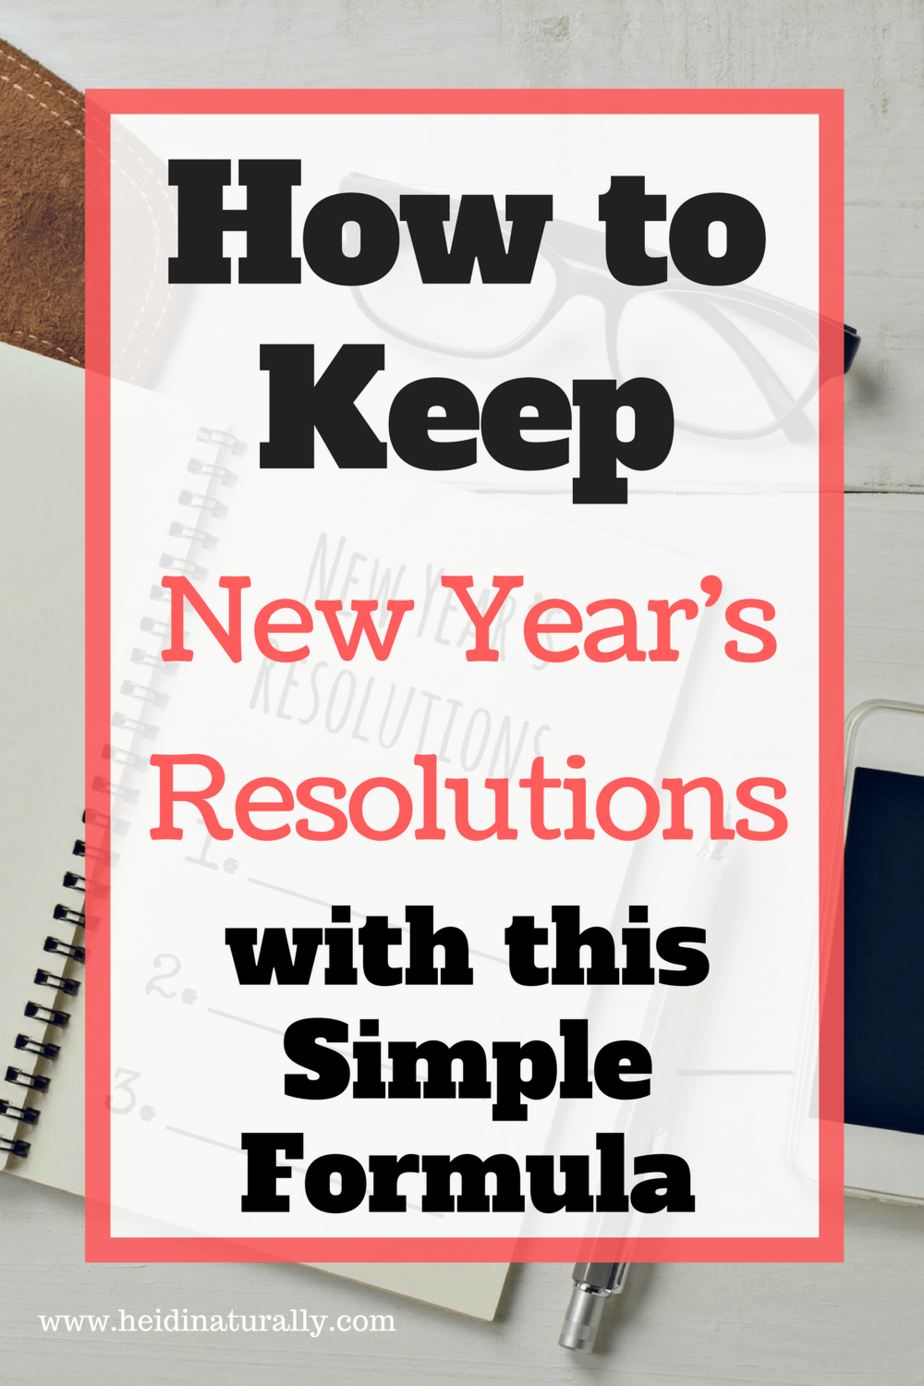 Find out how to keep your New Year's resolutions this year using these simple instructions and formula. Learn this easy trick & be successful.